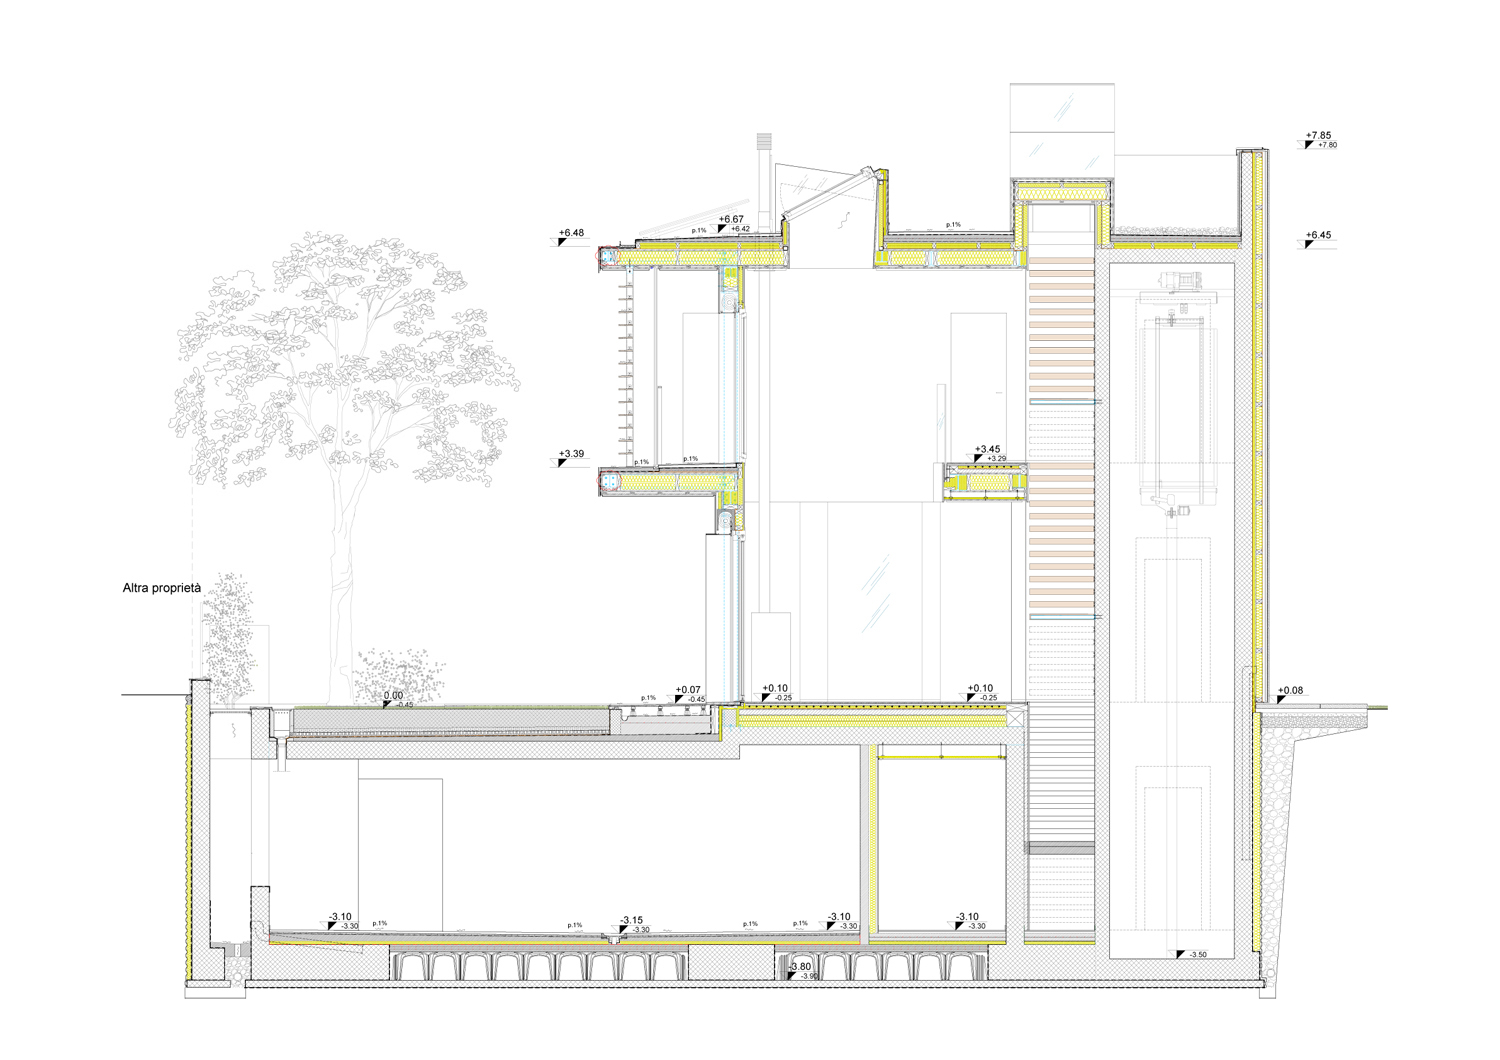 Section 2 angus fiori architects}